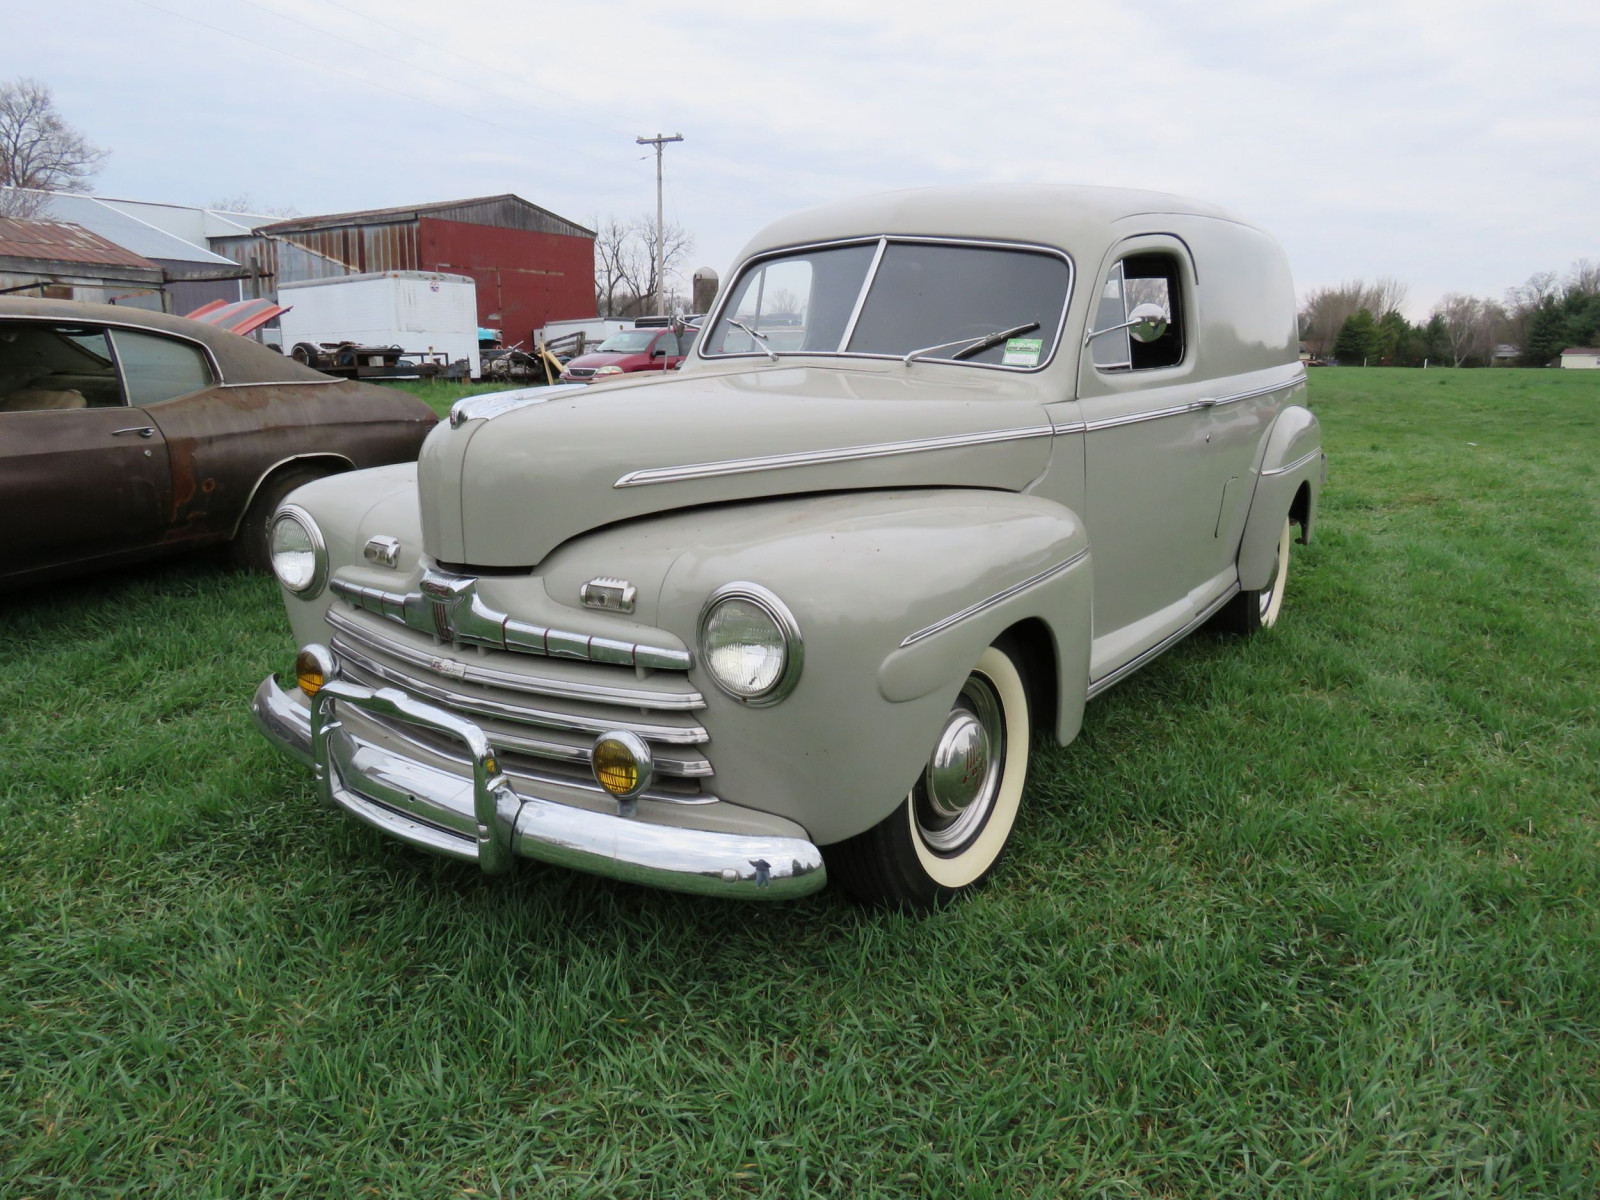 1946 Ford Sedan Delivery - Image 3